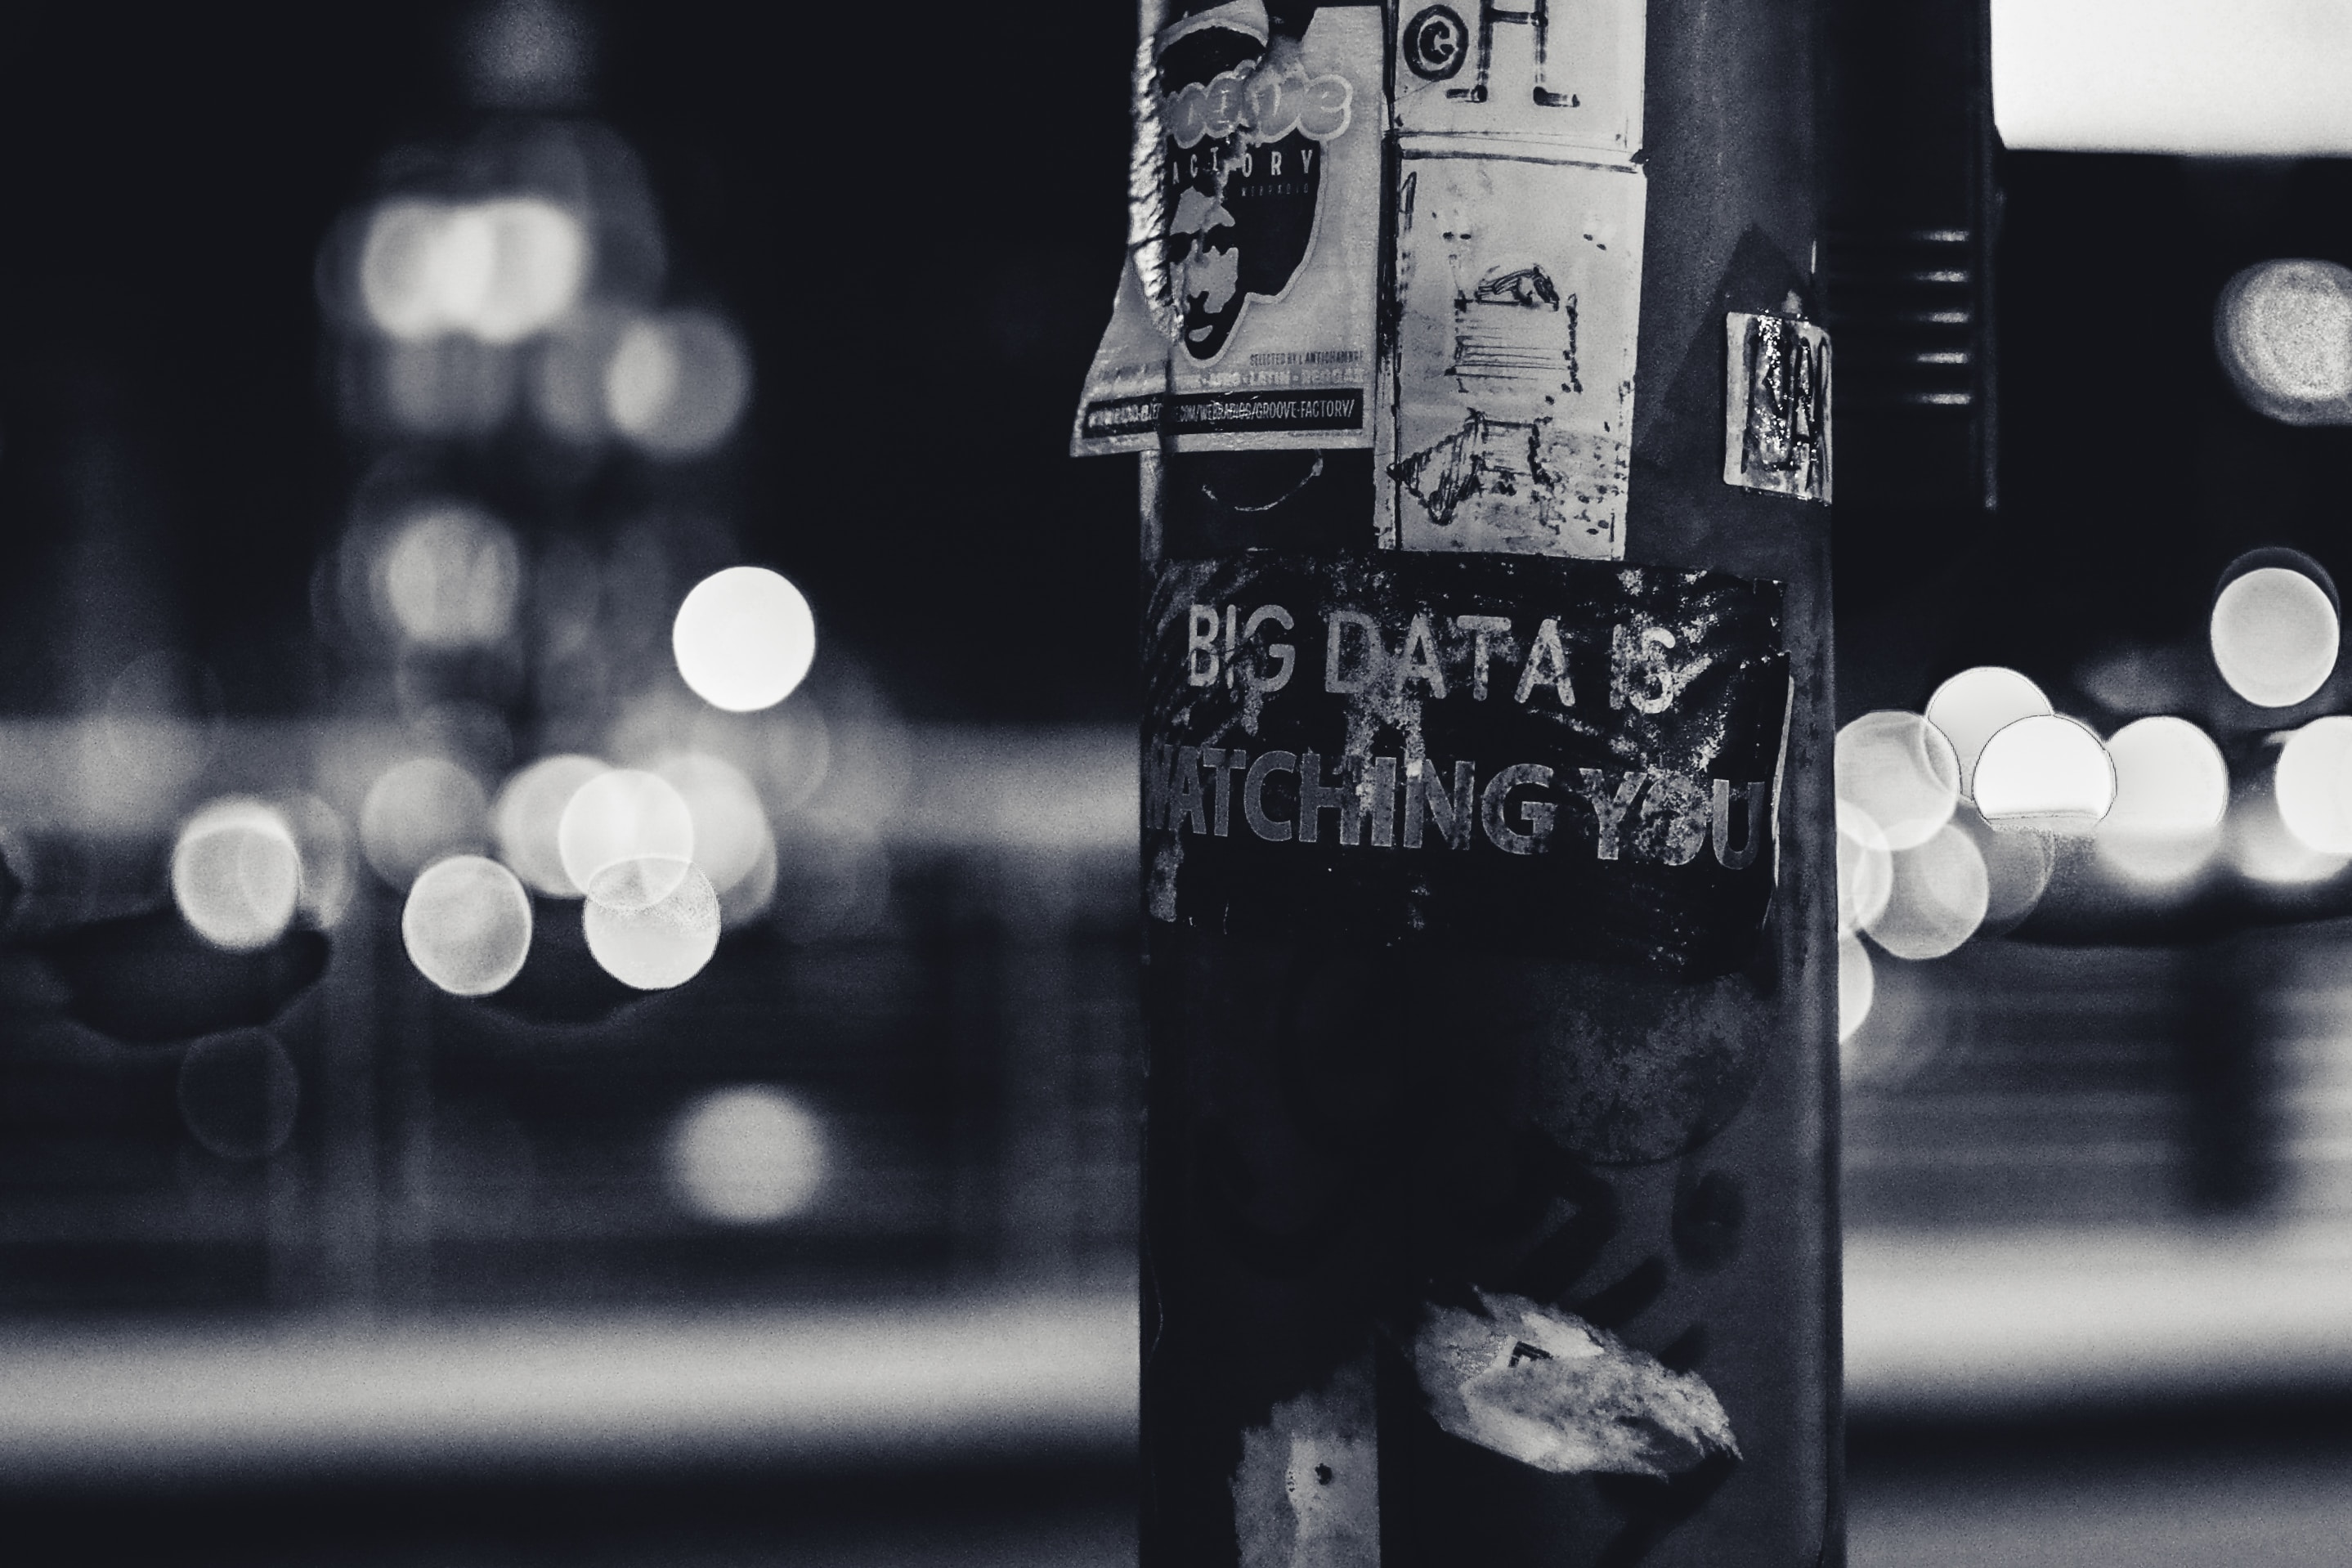 Tag big data dans la rue